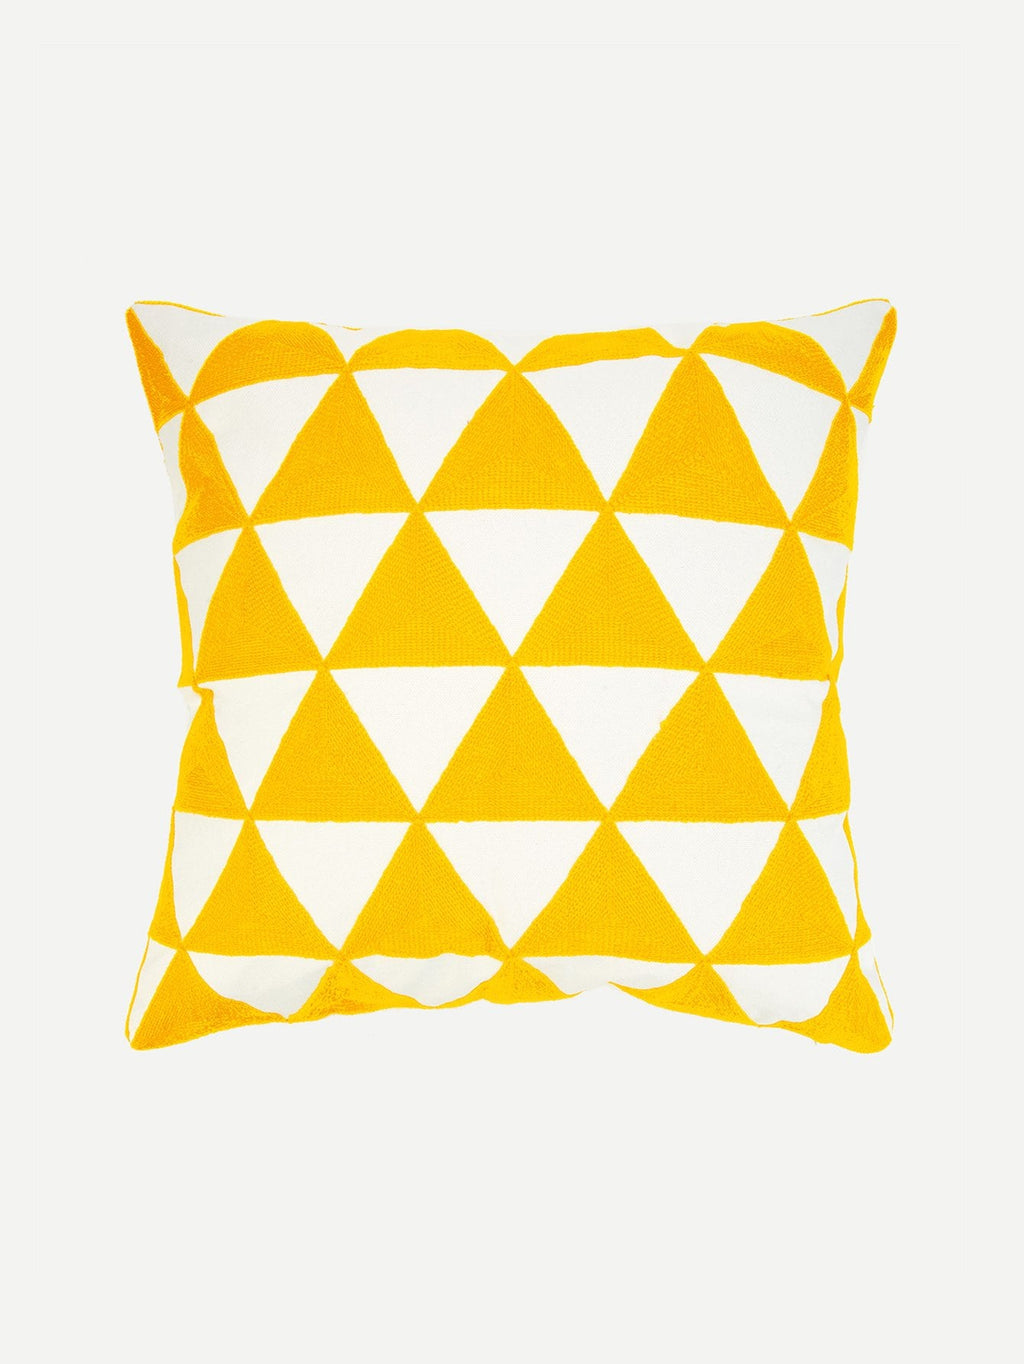 Geometric Yellow Embroidery Pillowcase